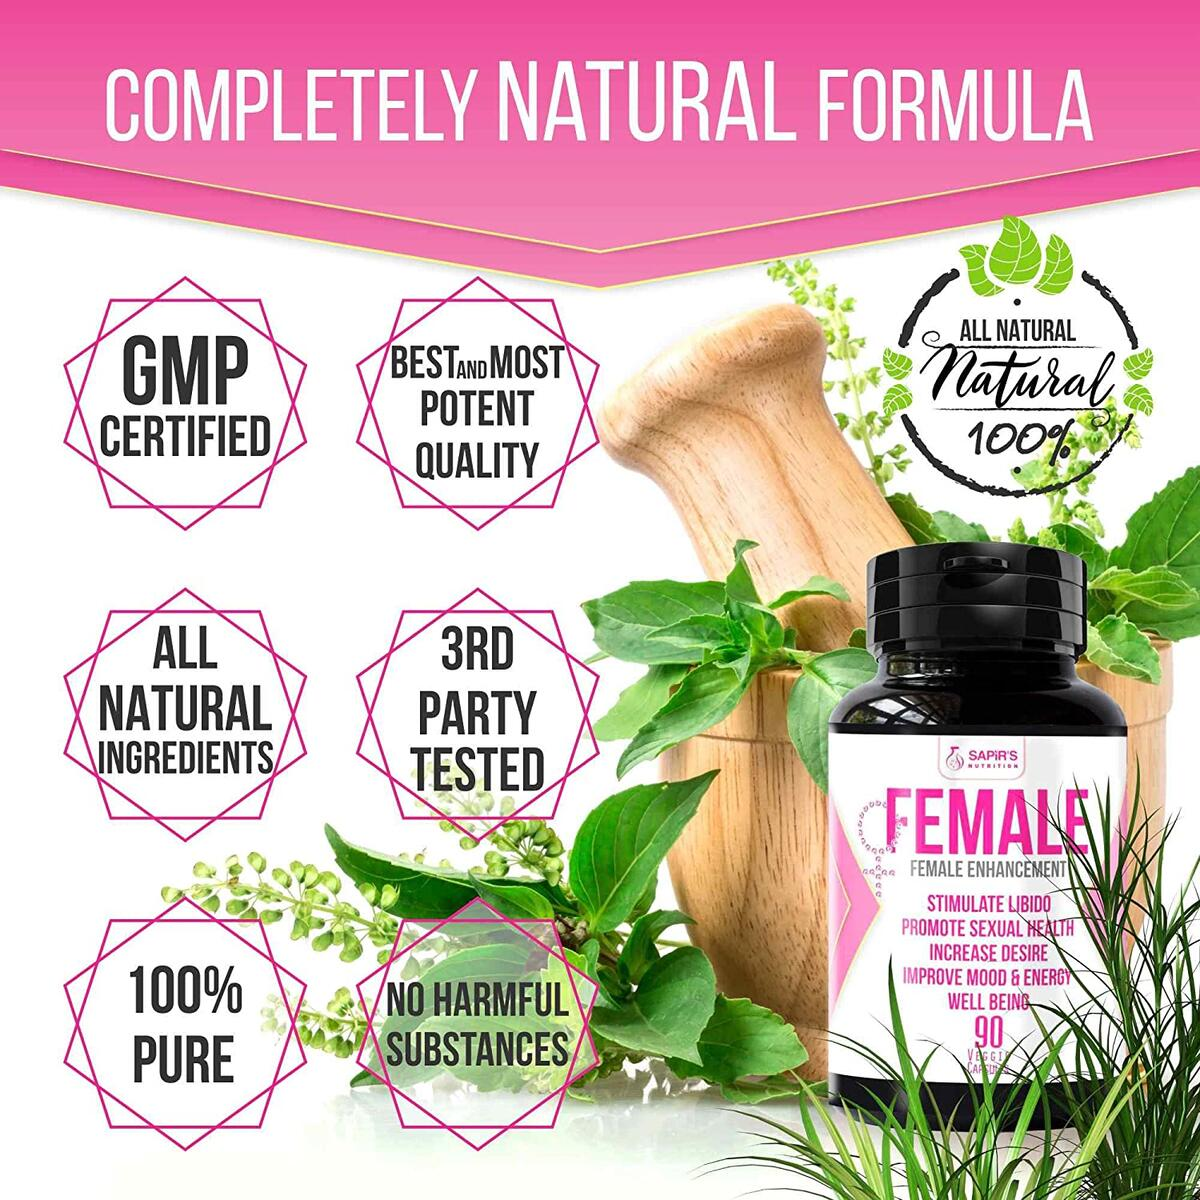 Natural Herbal Female Desire Supplement - Magic Pill for Women Testosterone Booster, Increase Stamina & Energy, Boosts Your Bed Drive & Prevent Dryness 100% Organic Women Supplements 90 Veggie Pill